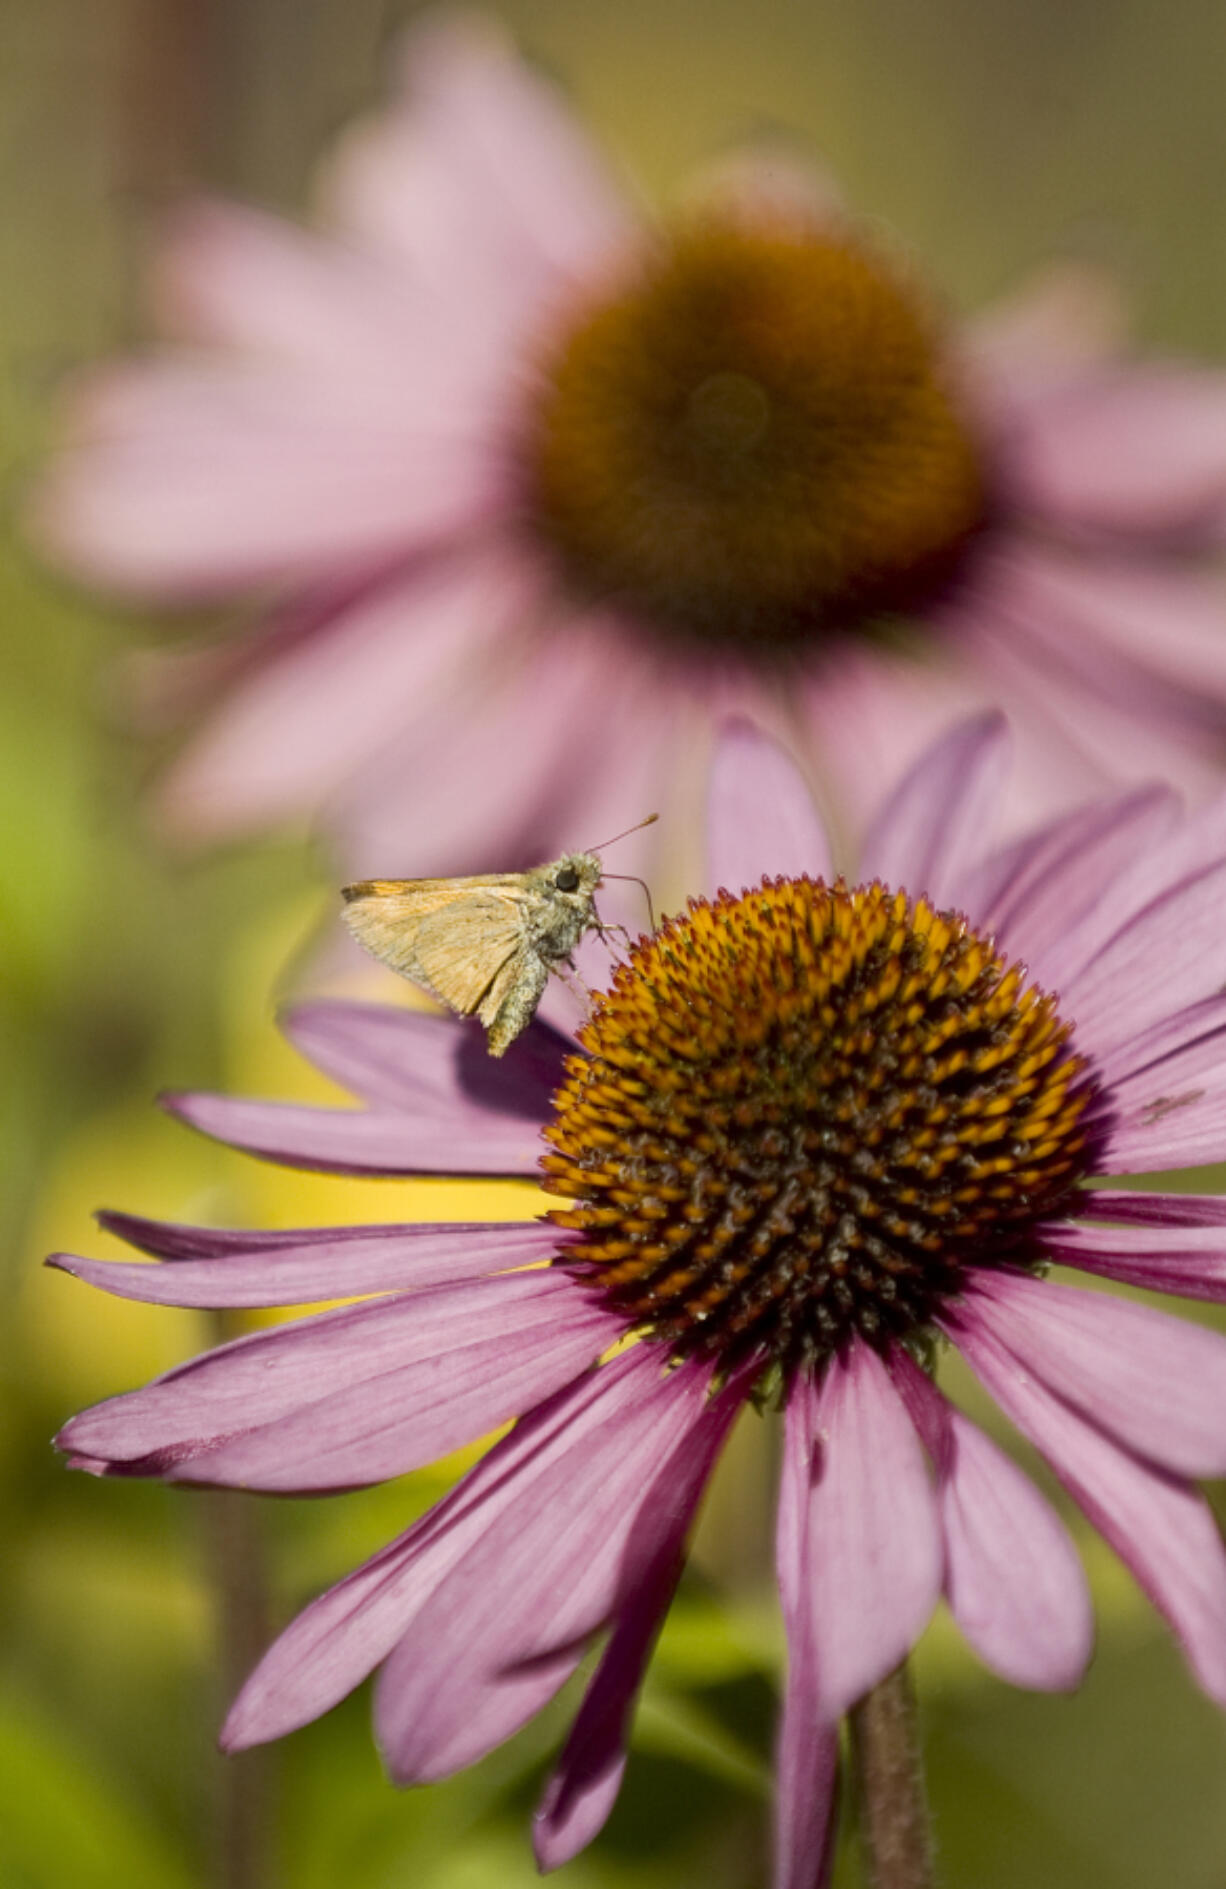 A moth lands on a purple coneflower. Moths spend the winter in a larval stage then emerge when the weather warms.